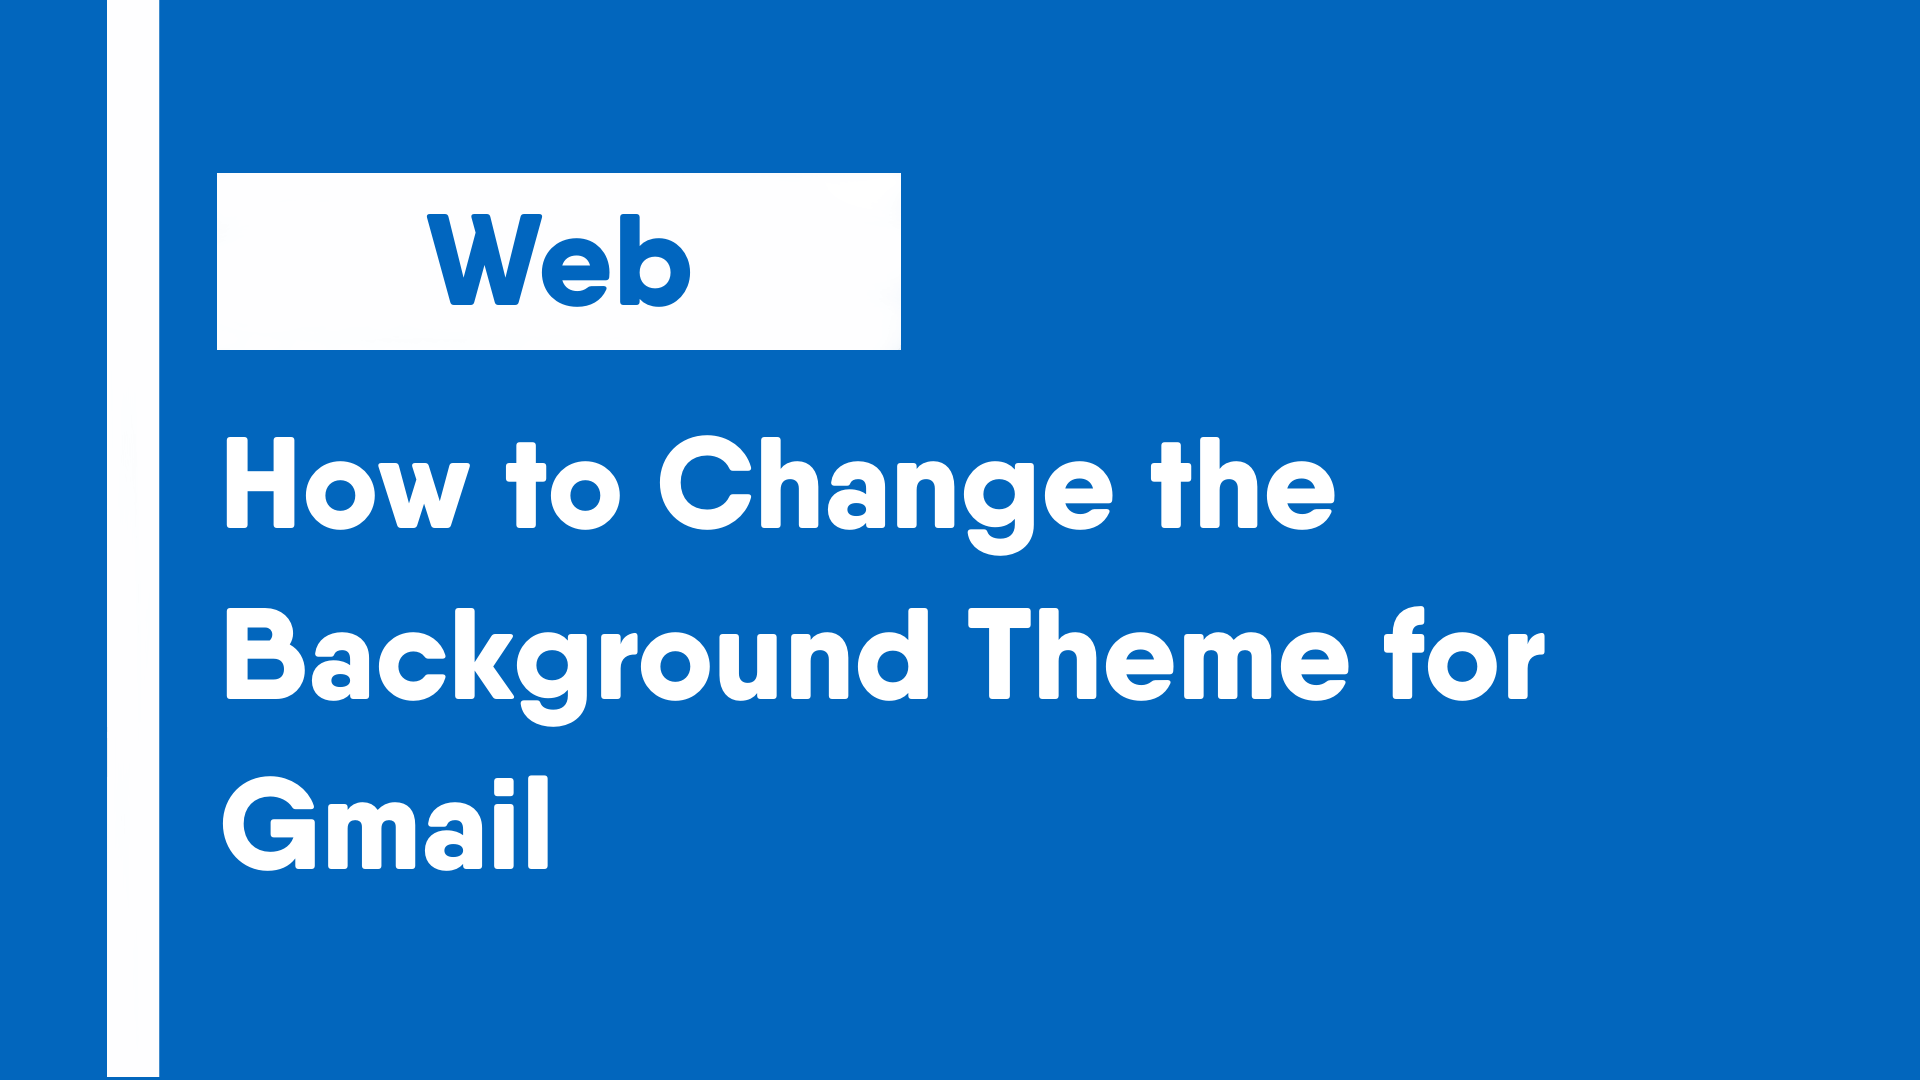 How to Change the Background Theme for Gmail